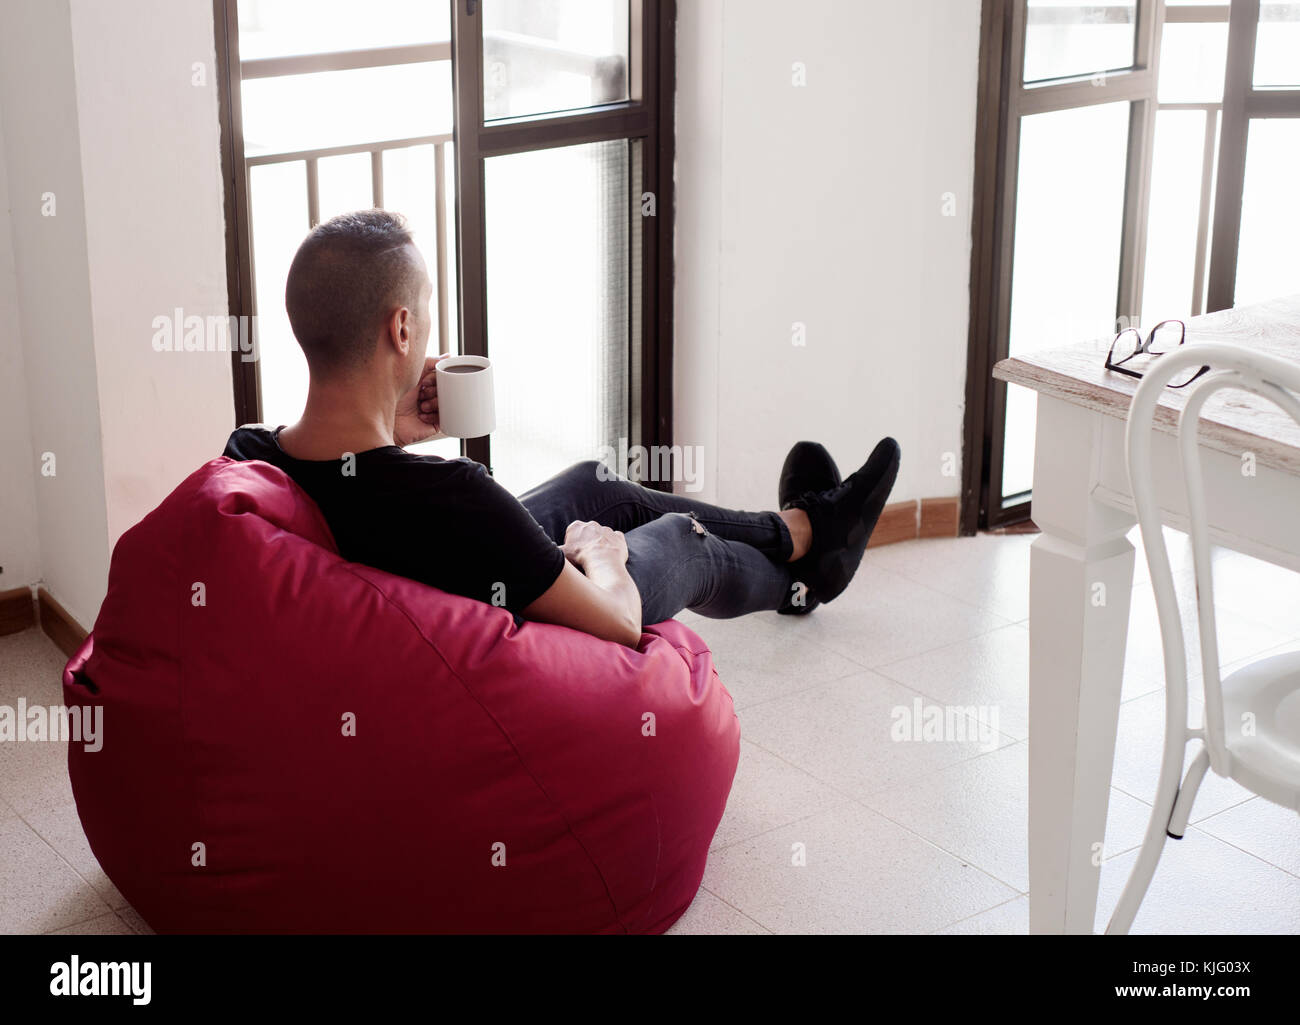 a young caucasian man indoors have a coffee sitting in a comfortable red bean bag chair - Stock Image